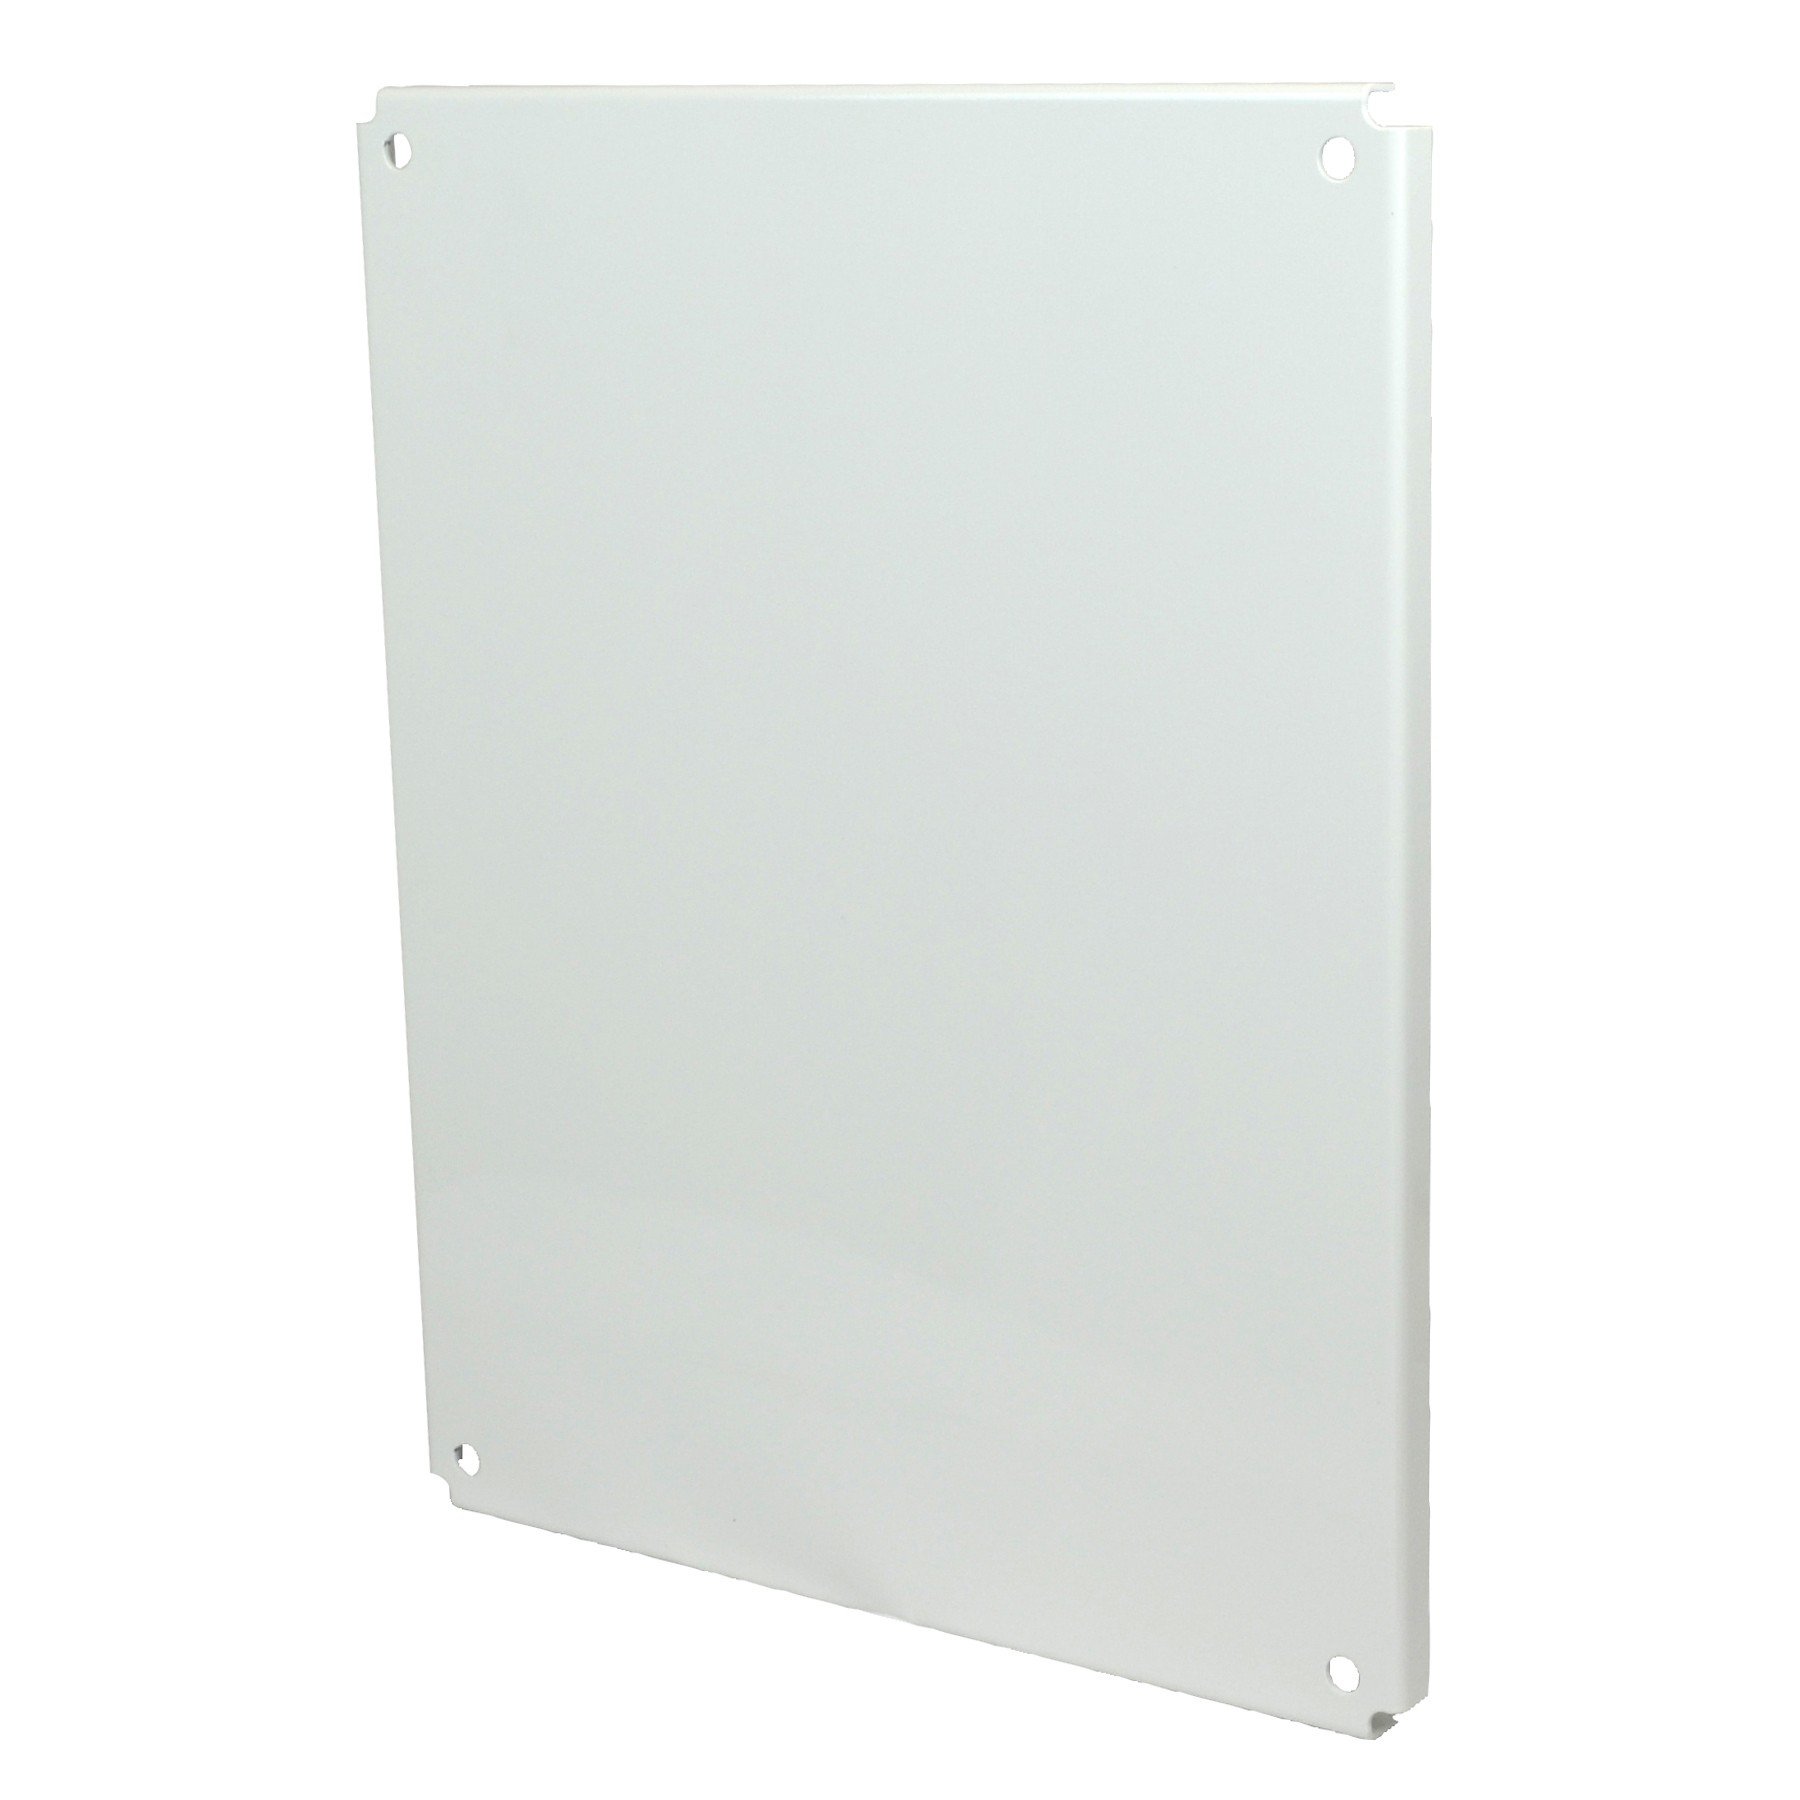 "Carbon Steel Back Panel for 30"" x 24"" Enclosures"